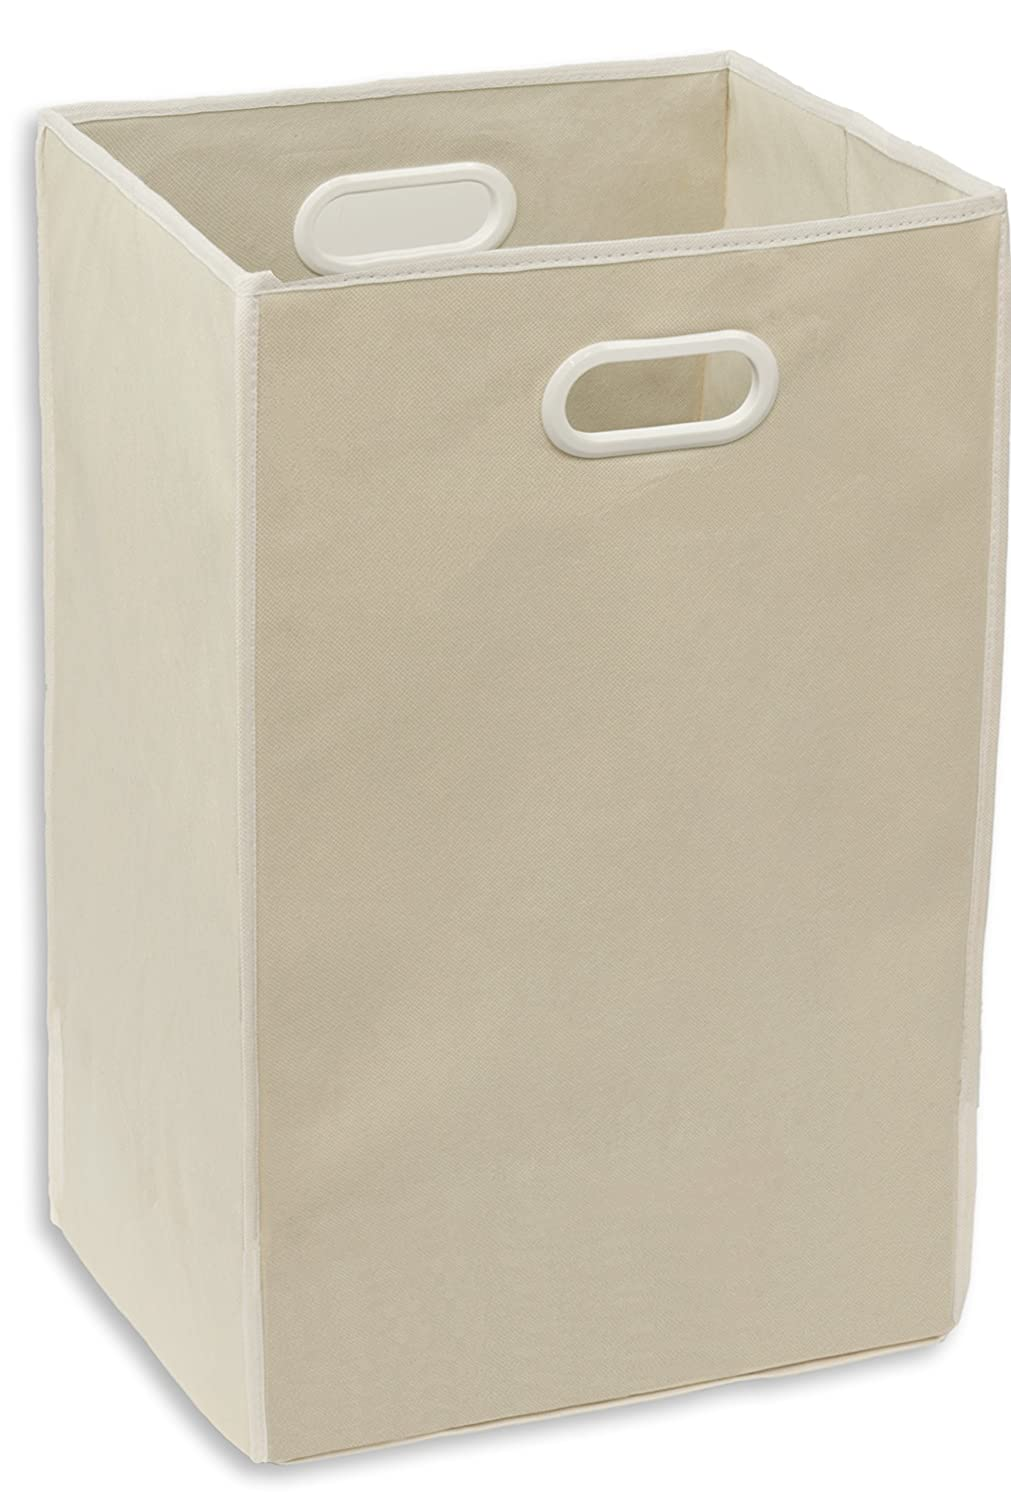 Simple Houseware Foldable Closet Laundry Hamper Basket, Beige